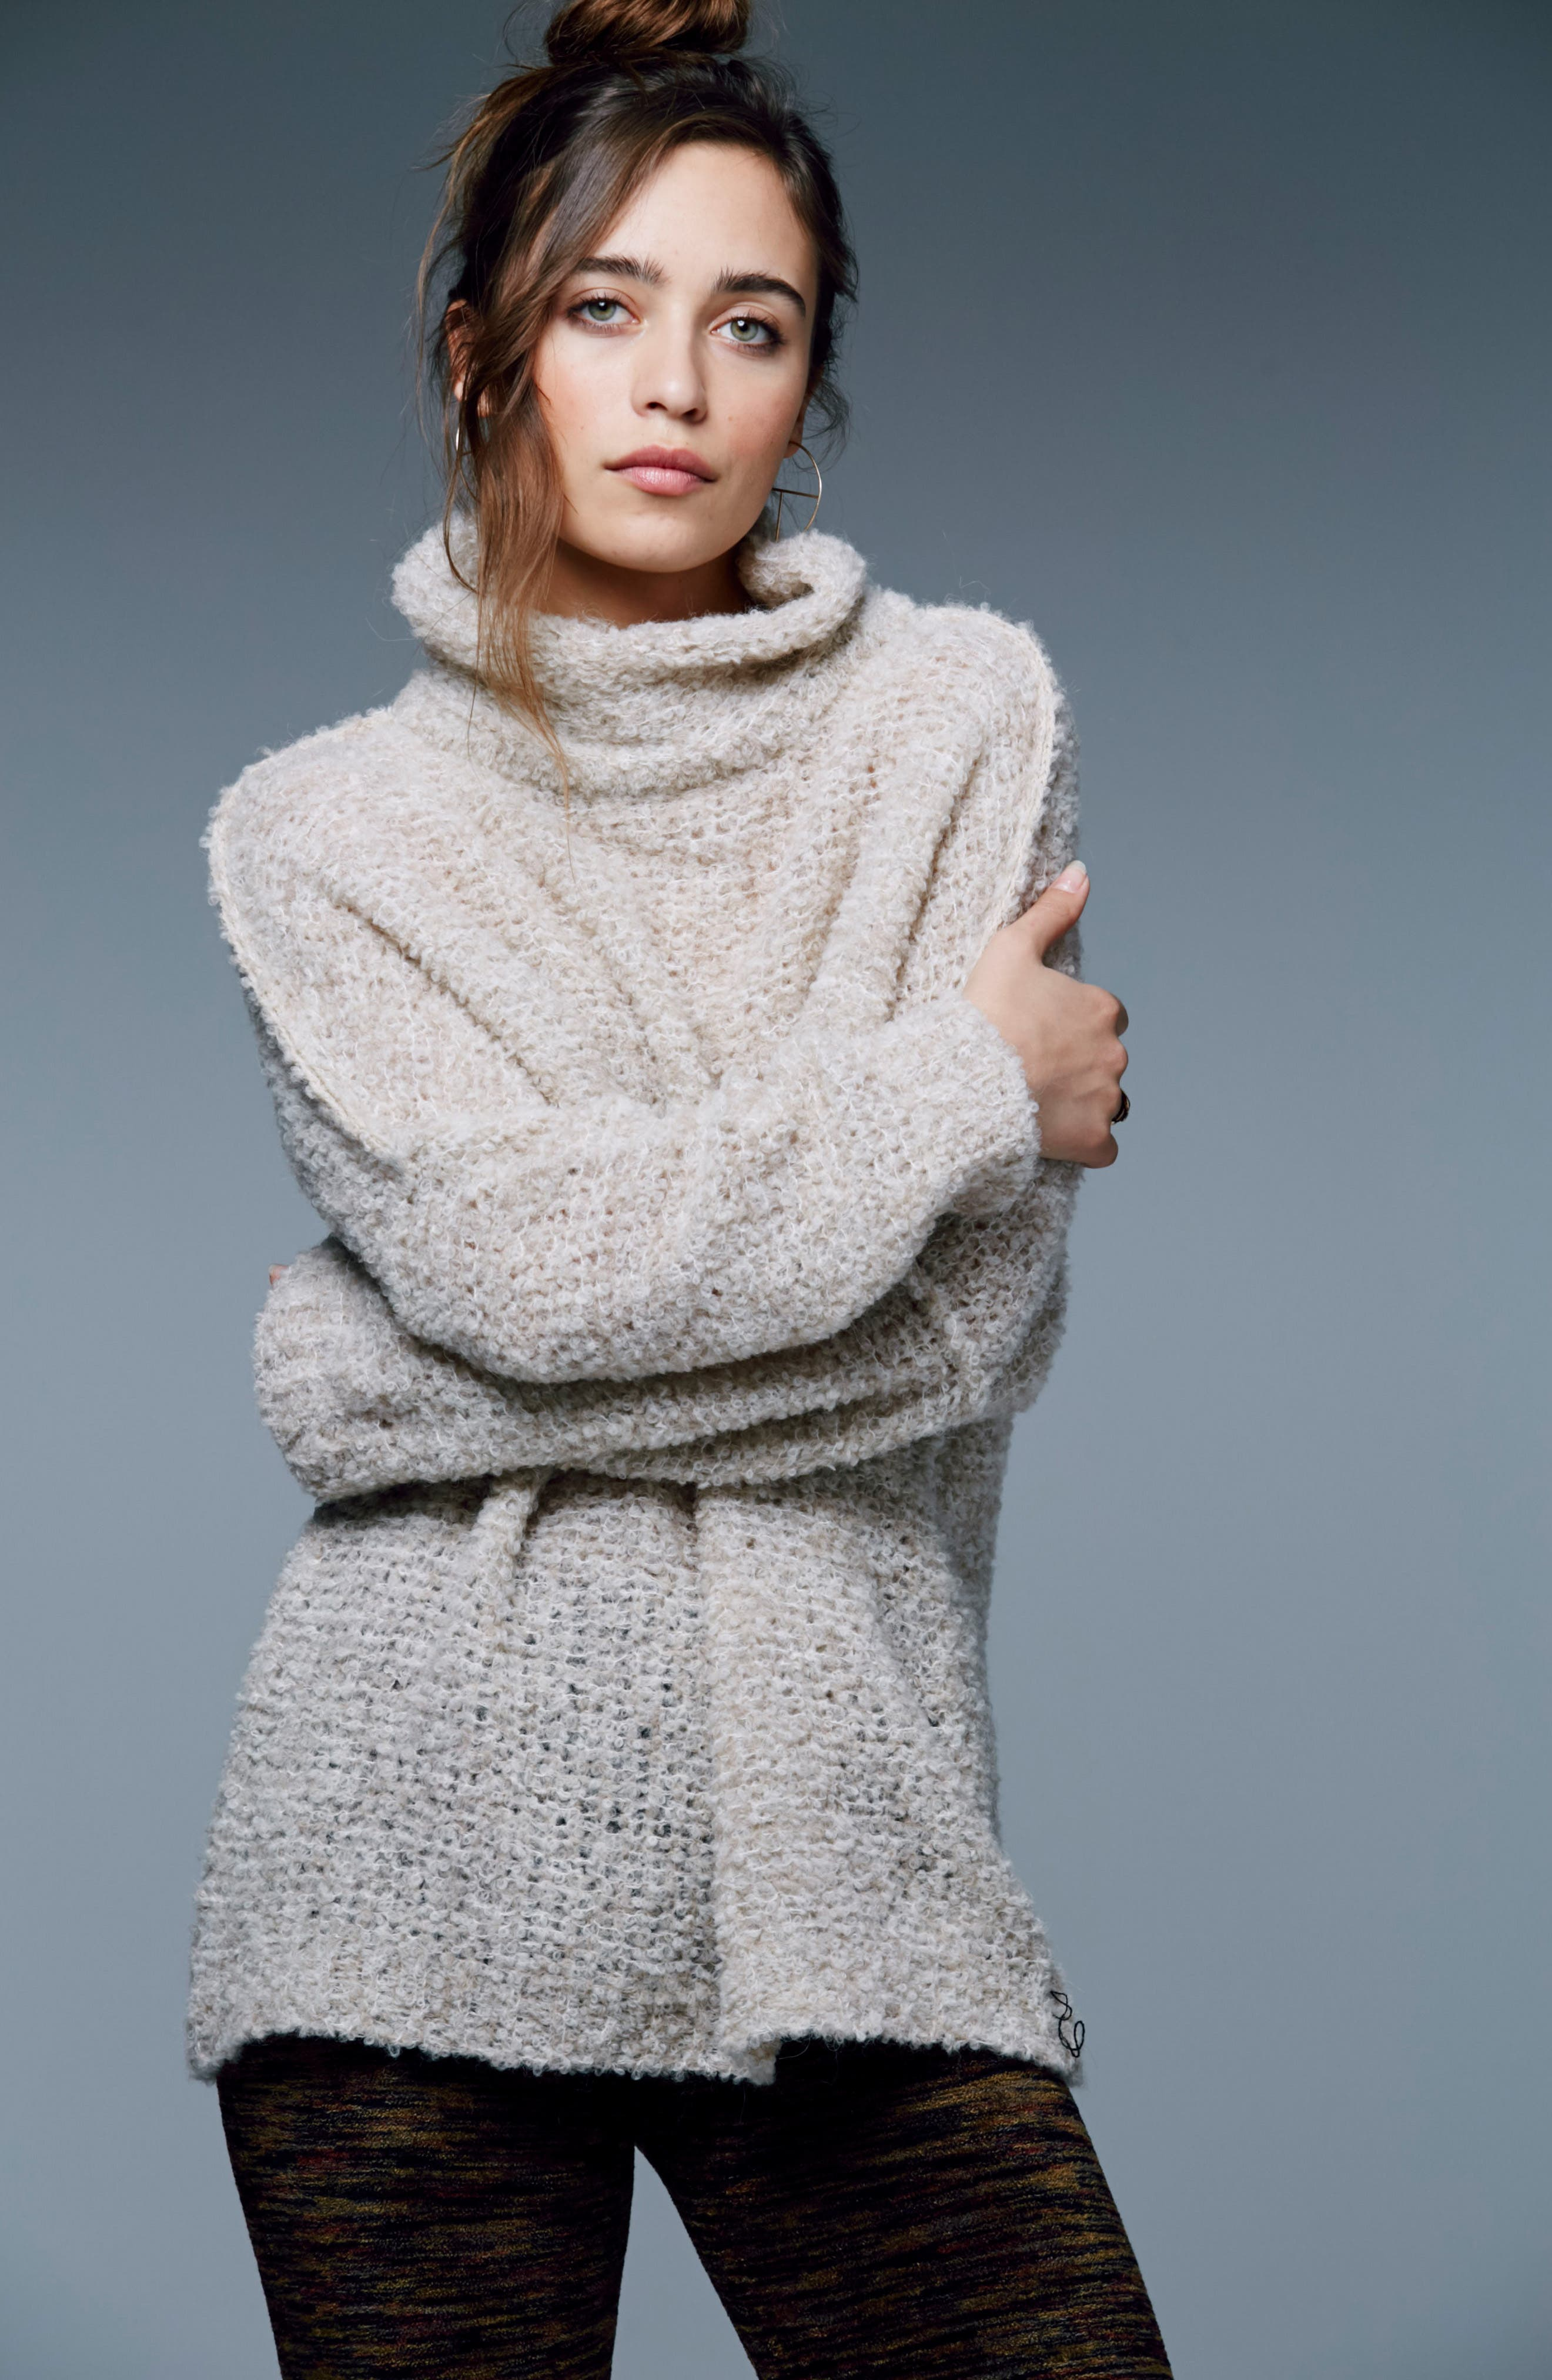 'She's All That' Knit Turtleneck Sweater,                             Alternate thumbnail 30, color,